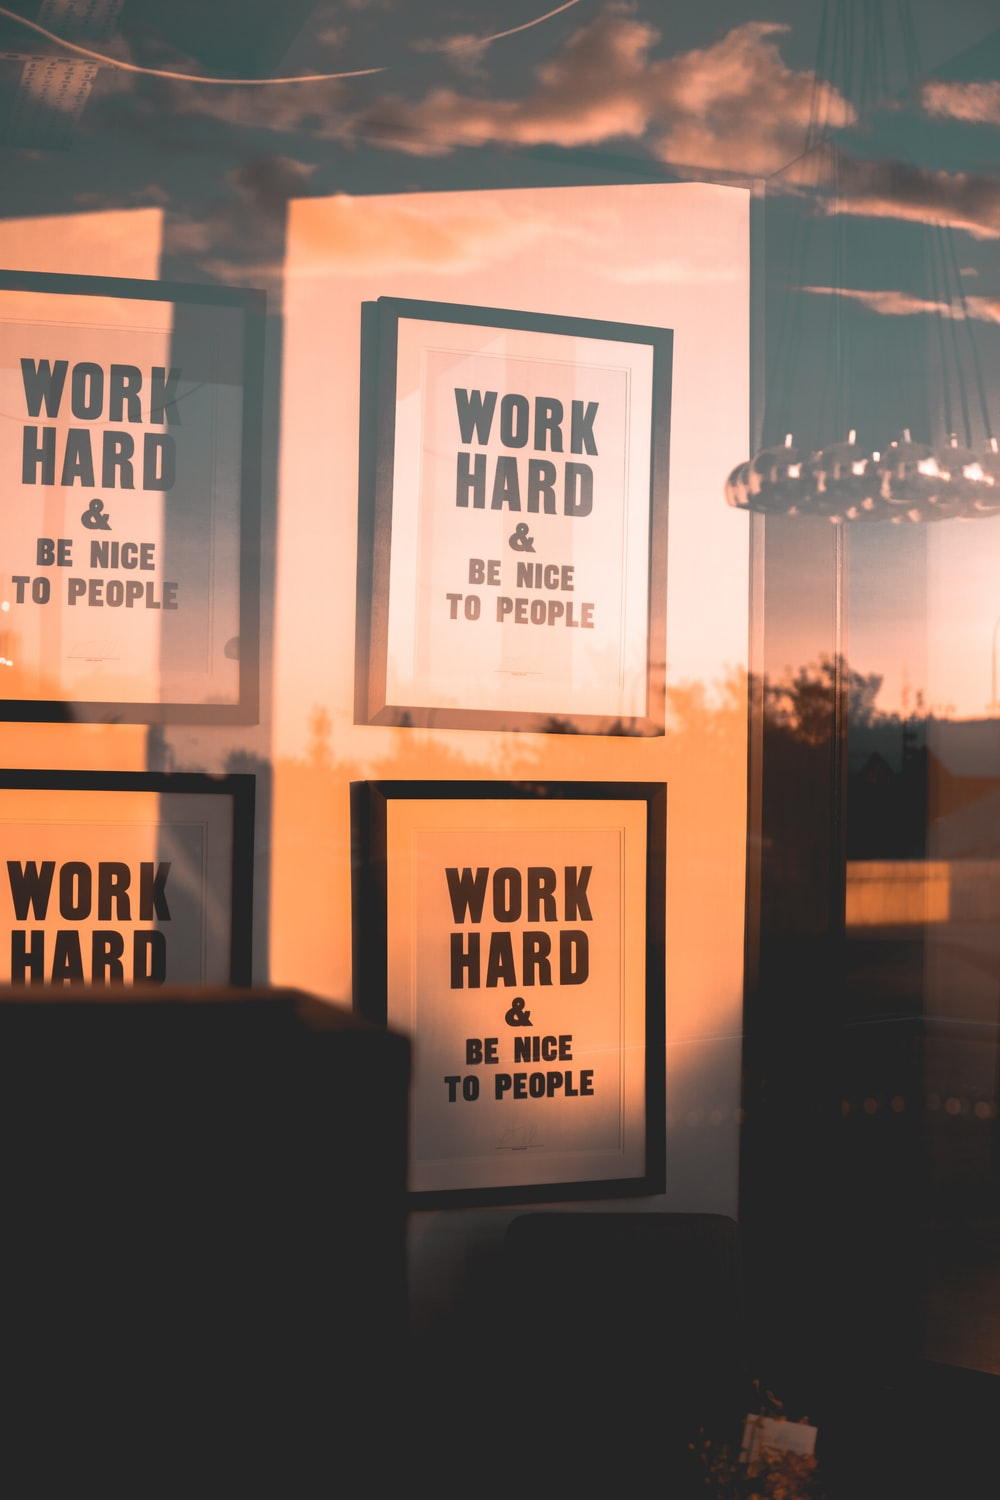 Work Hard & Be Nice To People wall quote posters